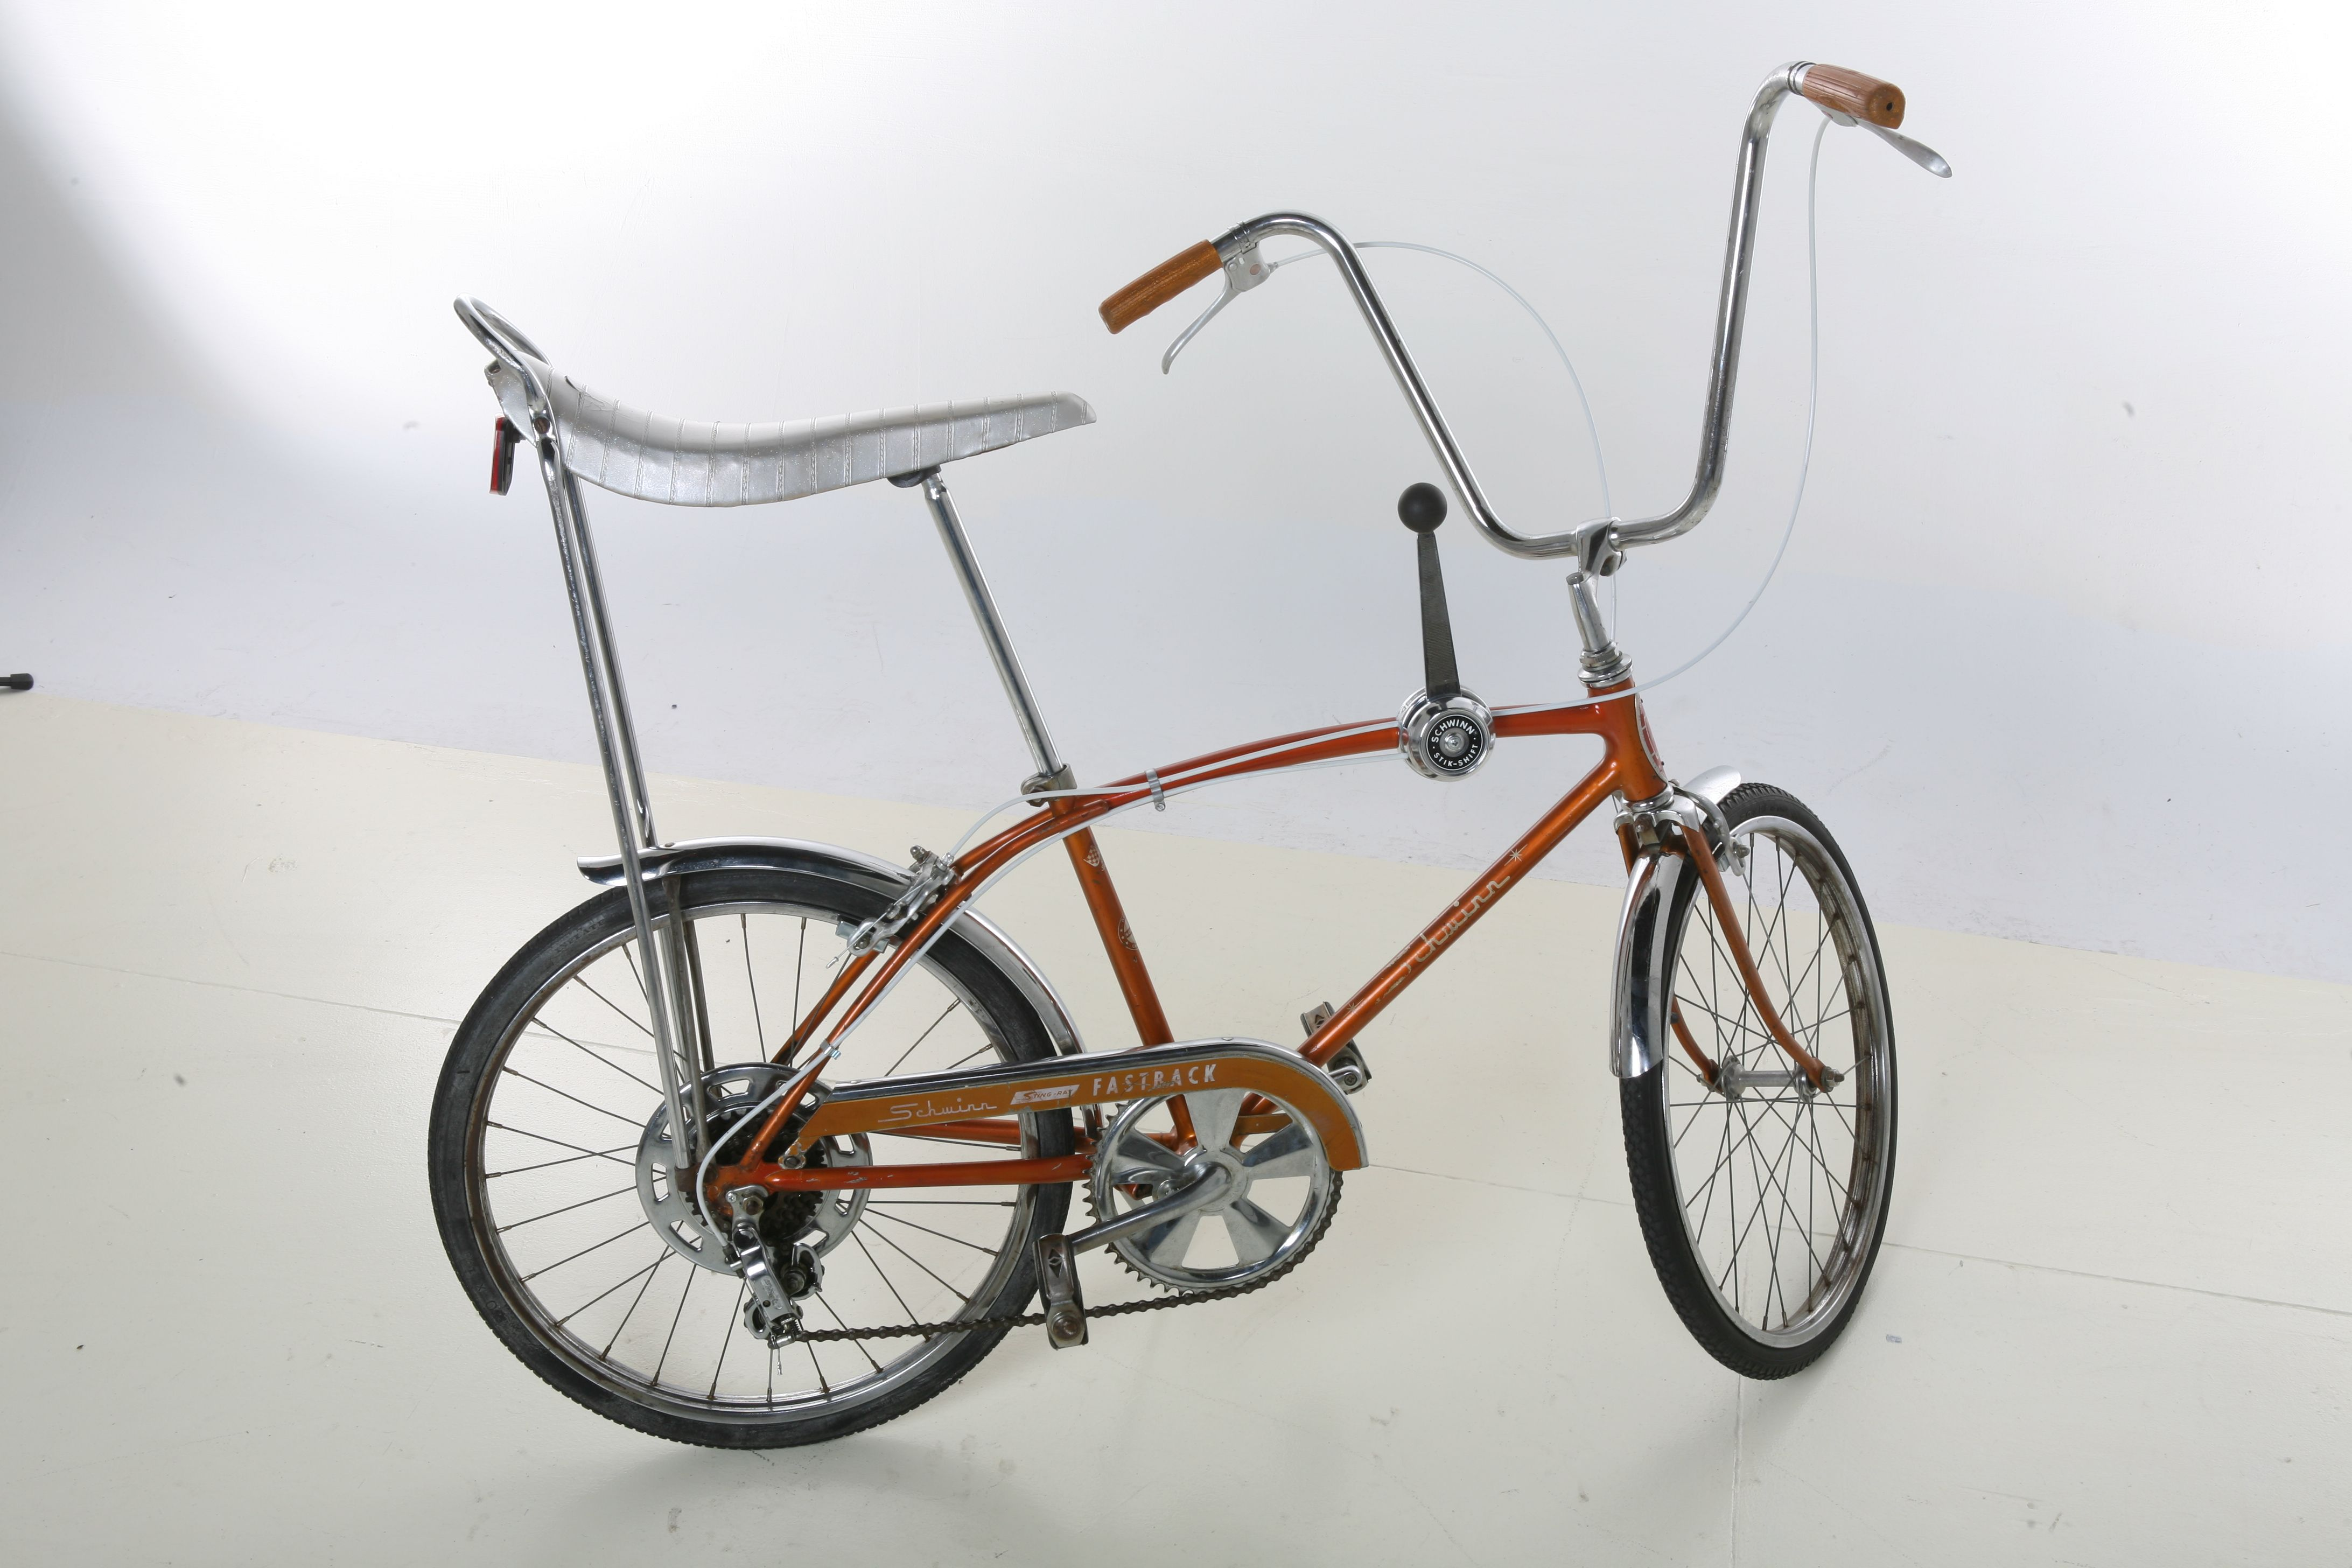 a-1967-vintage-schwinn-sting-ray-fastback-the-sting-ray-that-was-your.jpg